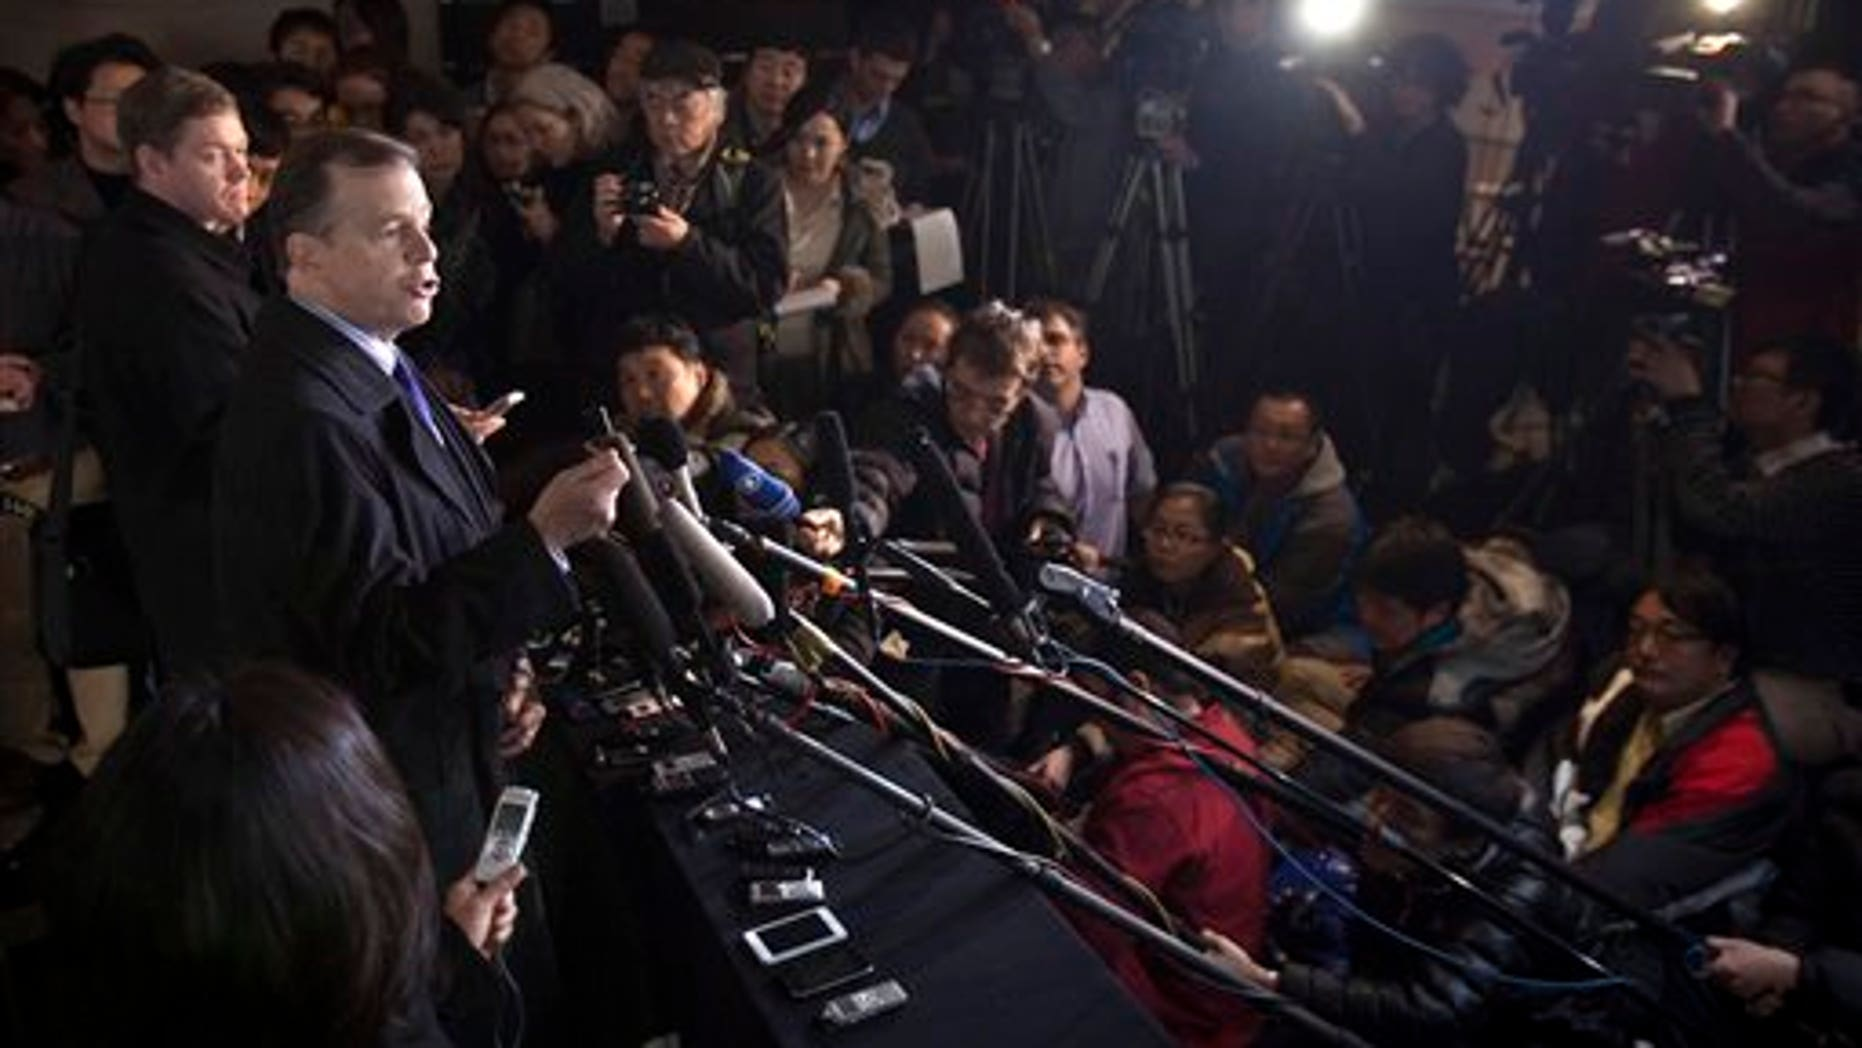 Feb. 22: U.S. Special Representative for North Korea Affairs Glyn Davies speaks to journalists upon arrival at a hotel in Beijing, China.